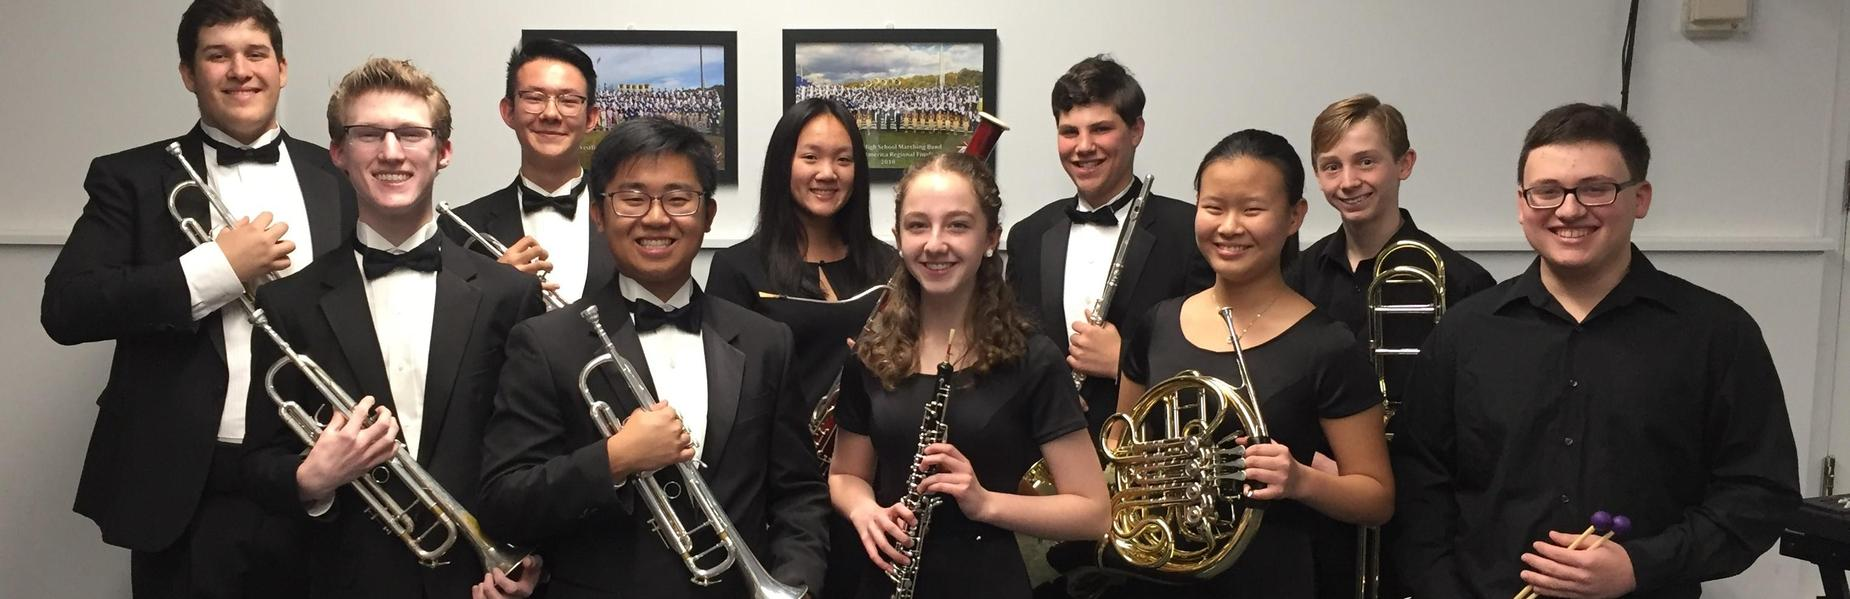 10 Westfield High School student musicians have been selected to perform with a Central Jersey regional band in January.  Pictured here are the students holding their instruments.